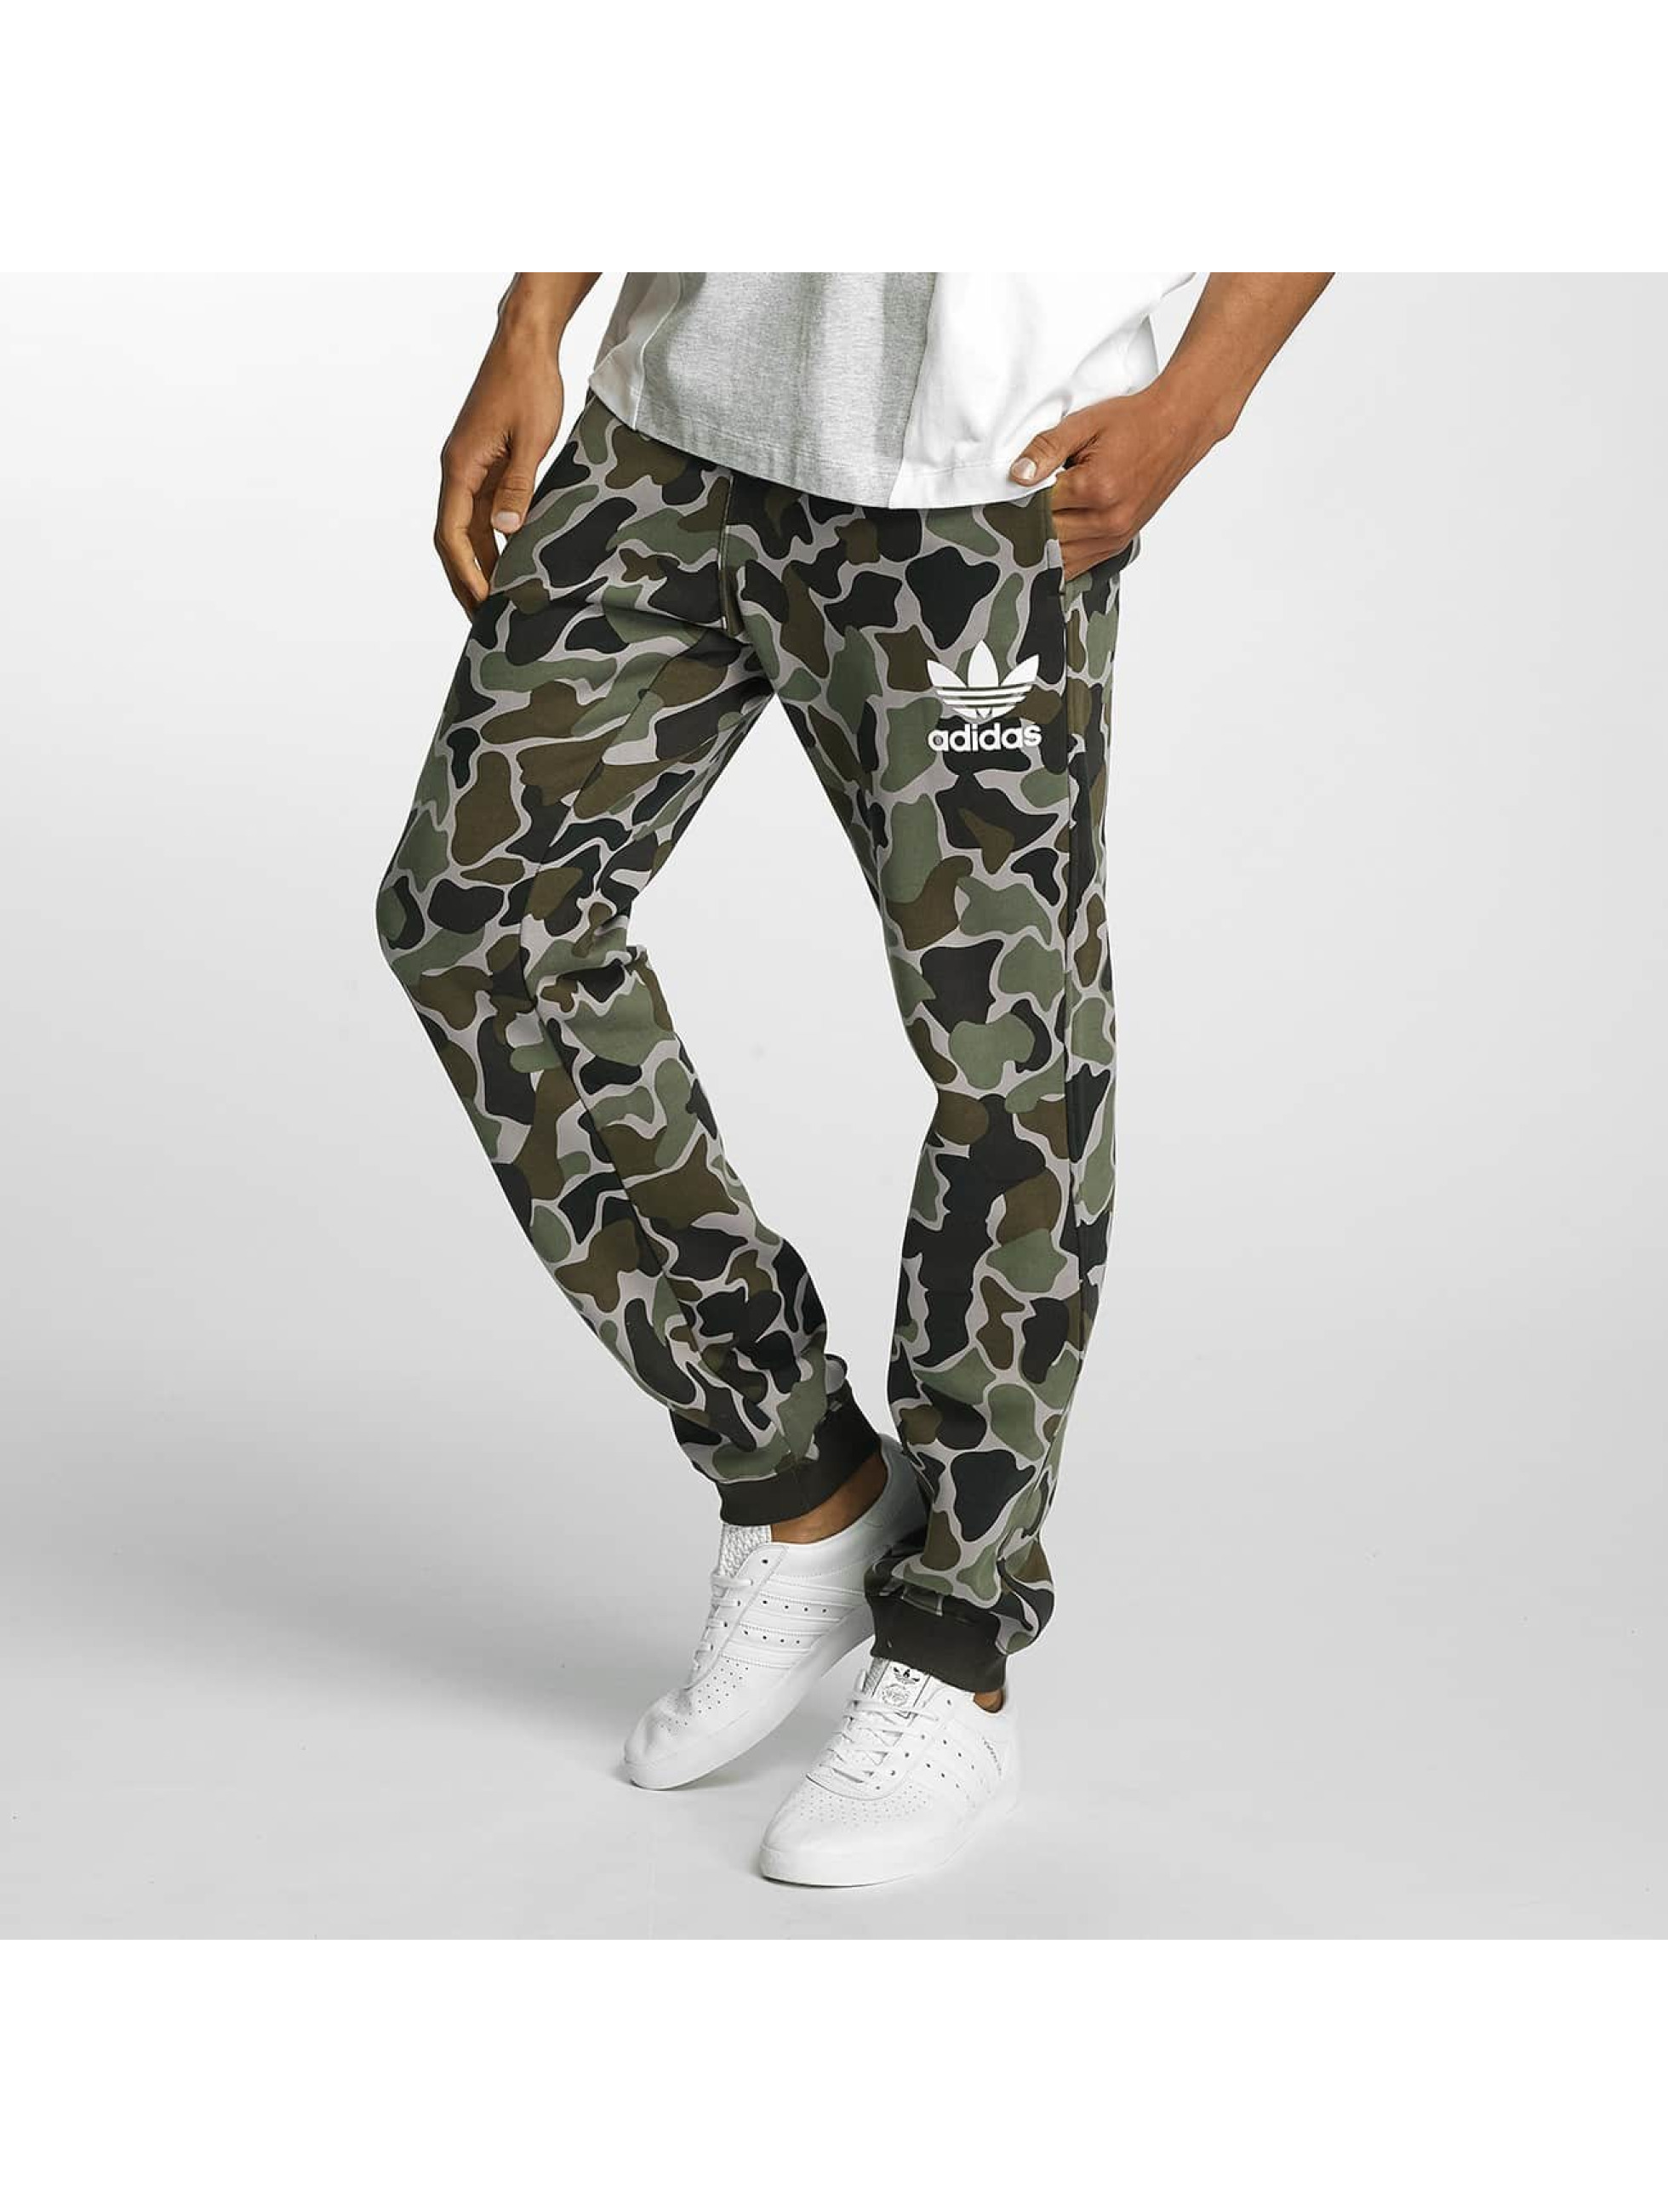 adidas herren hosen jogginghose camo ebay. Black Bedroom Furniture Sets. Home Design Ideas